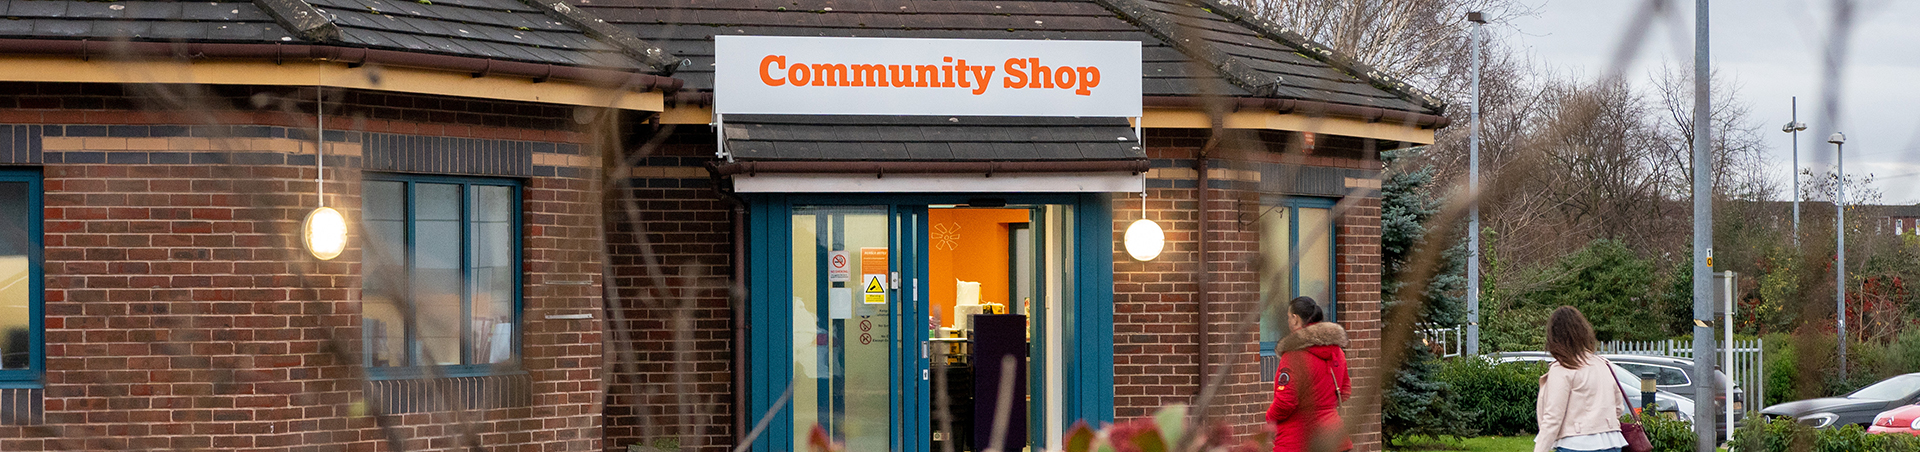 Community Shop Membership